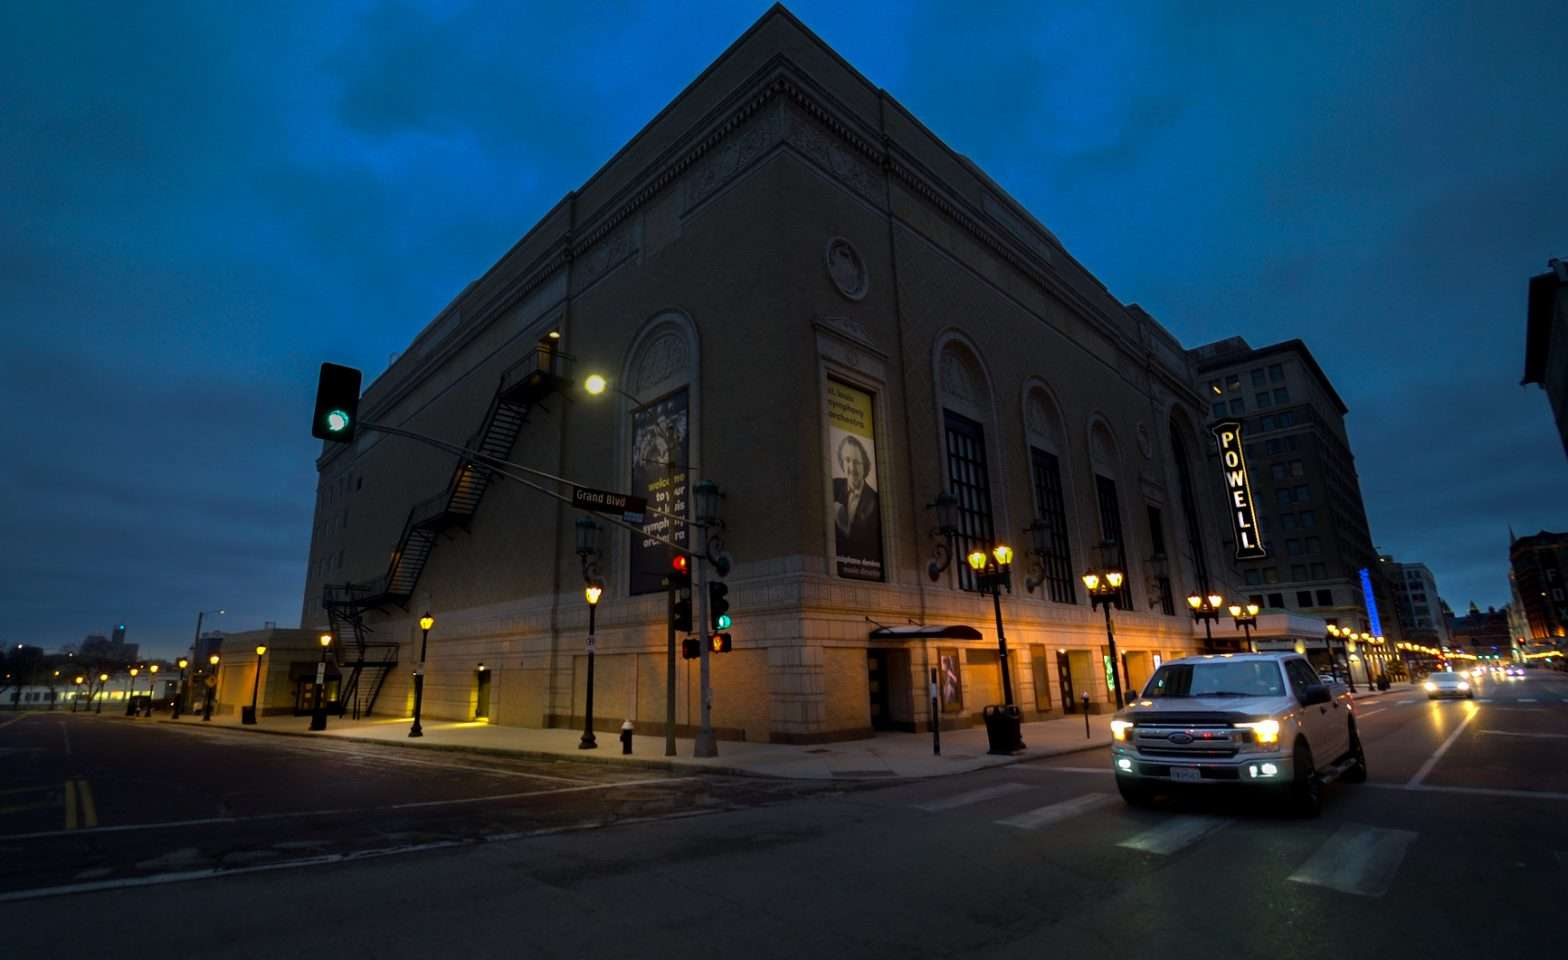 Powell Hall SLSO building is said to be haunted Feb. 2021. credit craig currie